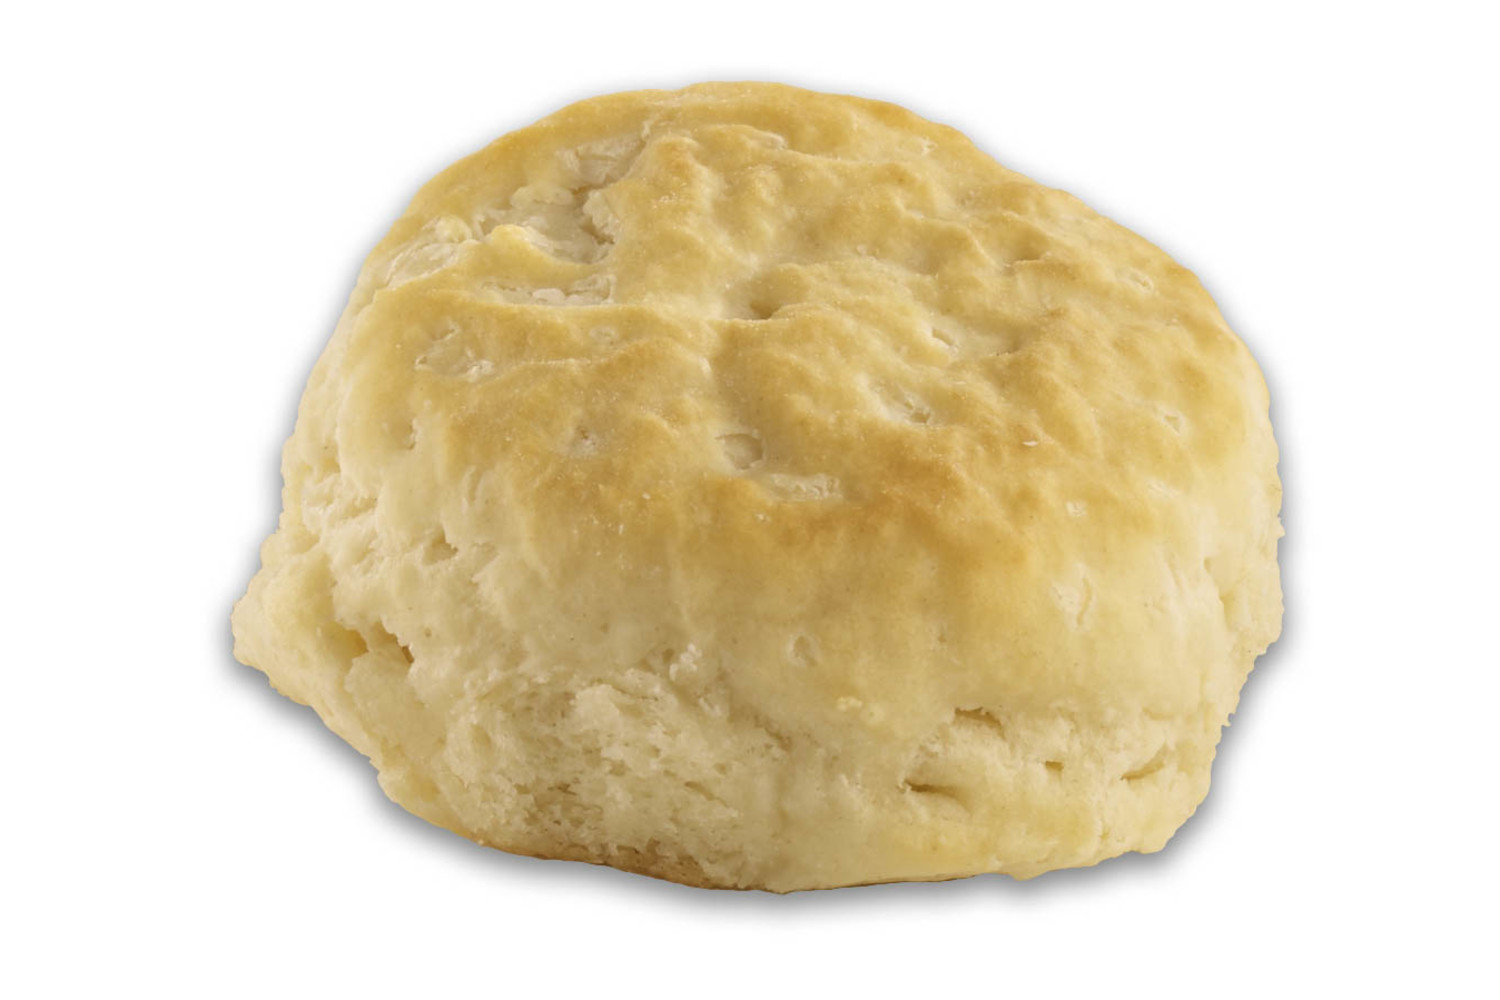 BAKERY CHEF BUTTERMILK ZERO TRANS FAT BISCUITS 1.4 OZ